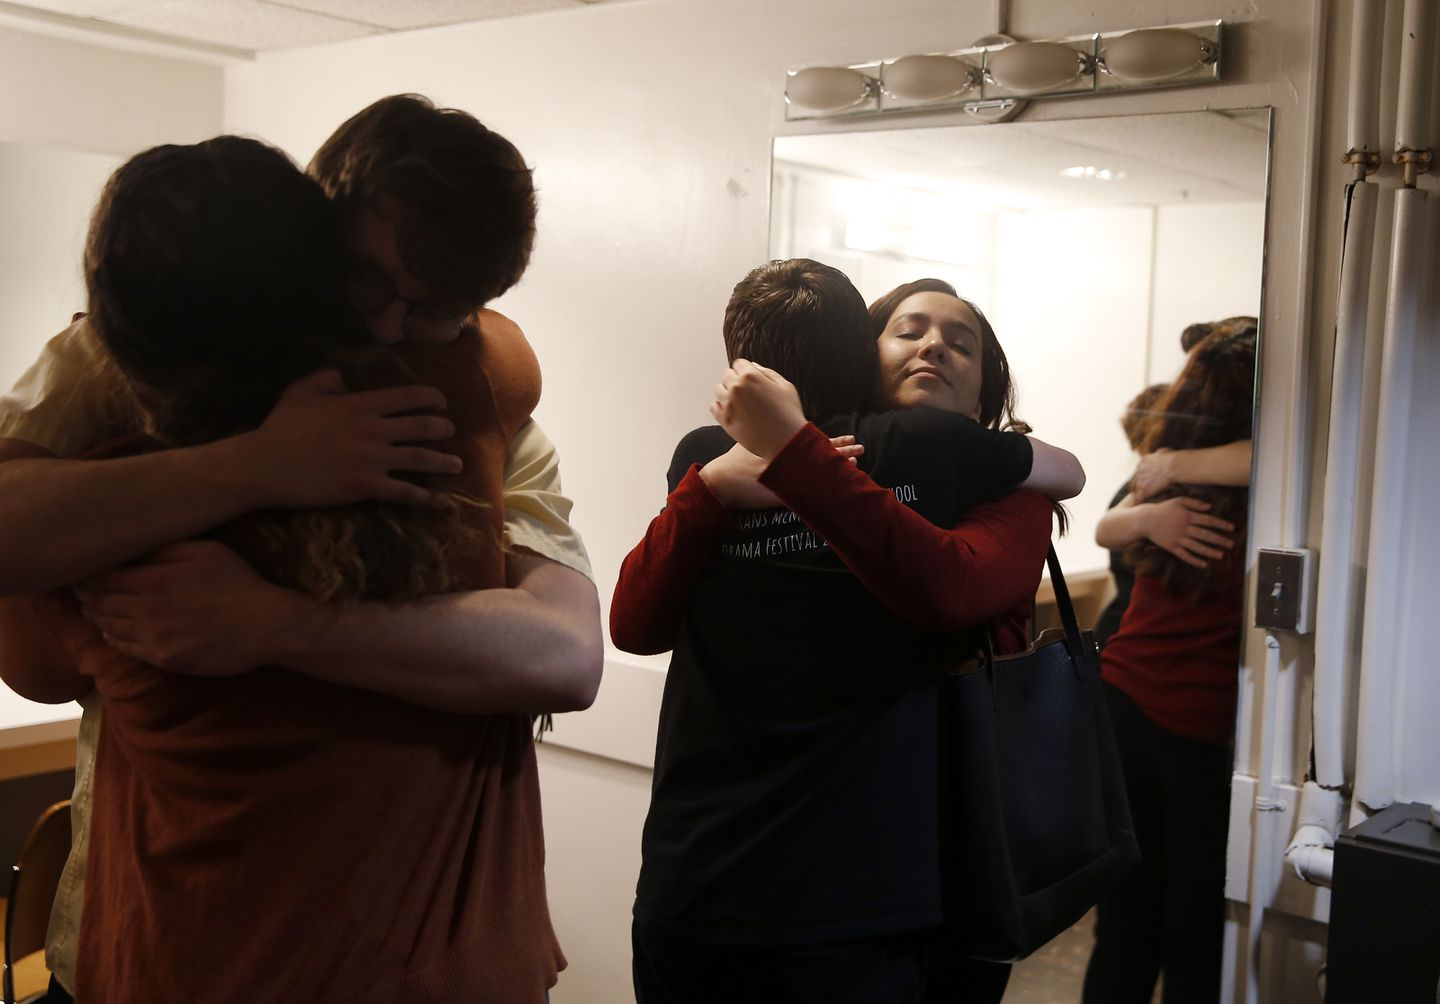 Moments before their final performance at the state drama festival, Deb embraced her fellow cast members.